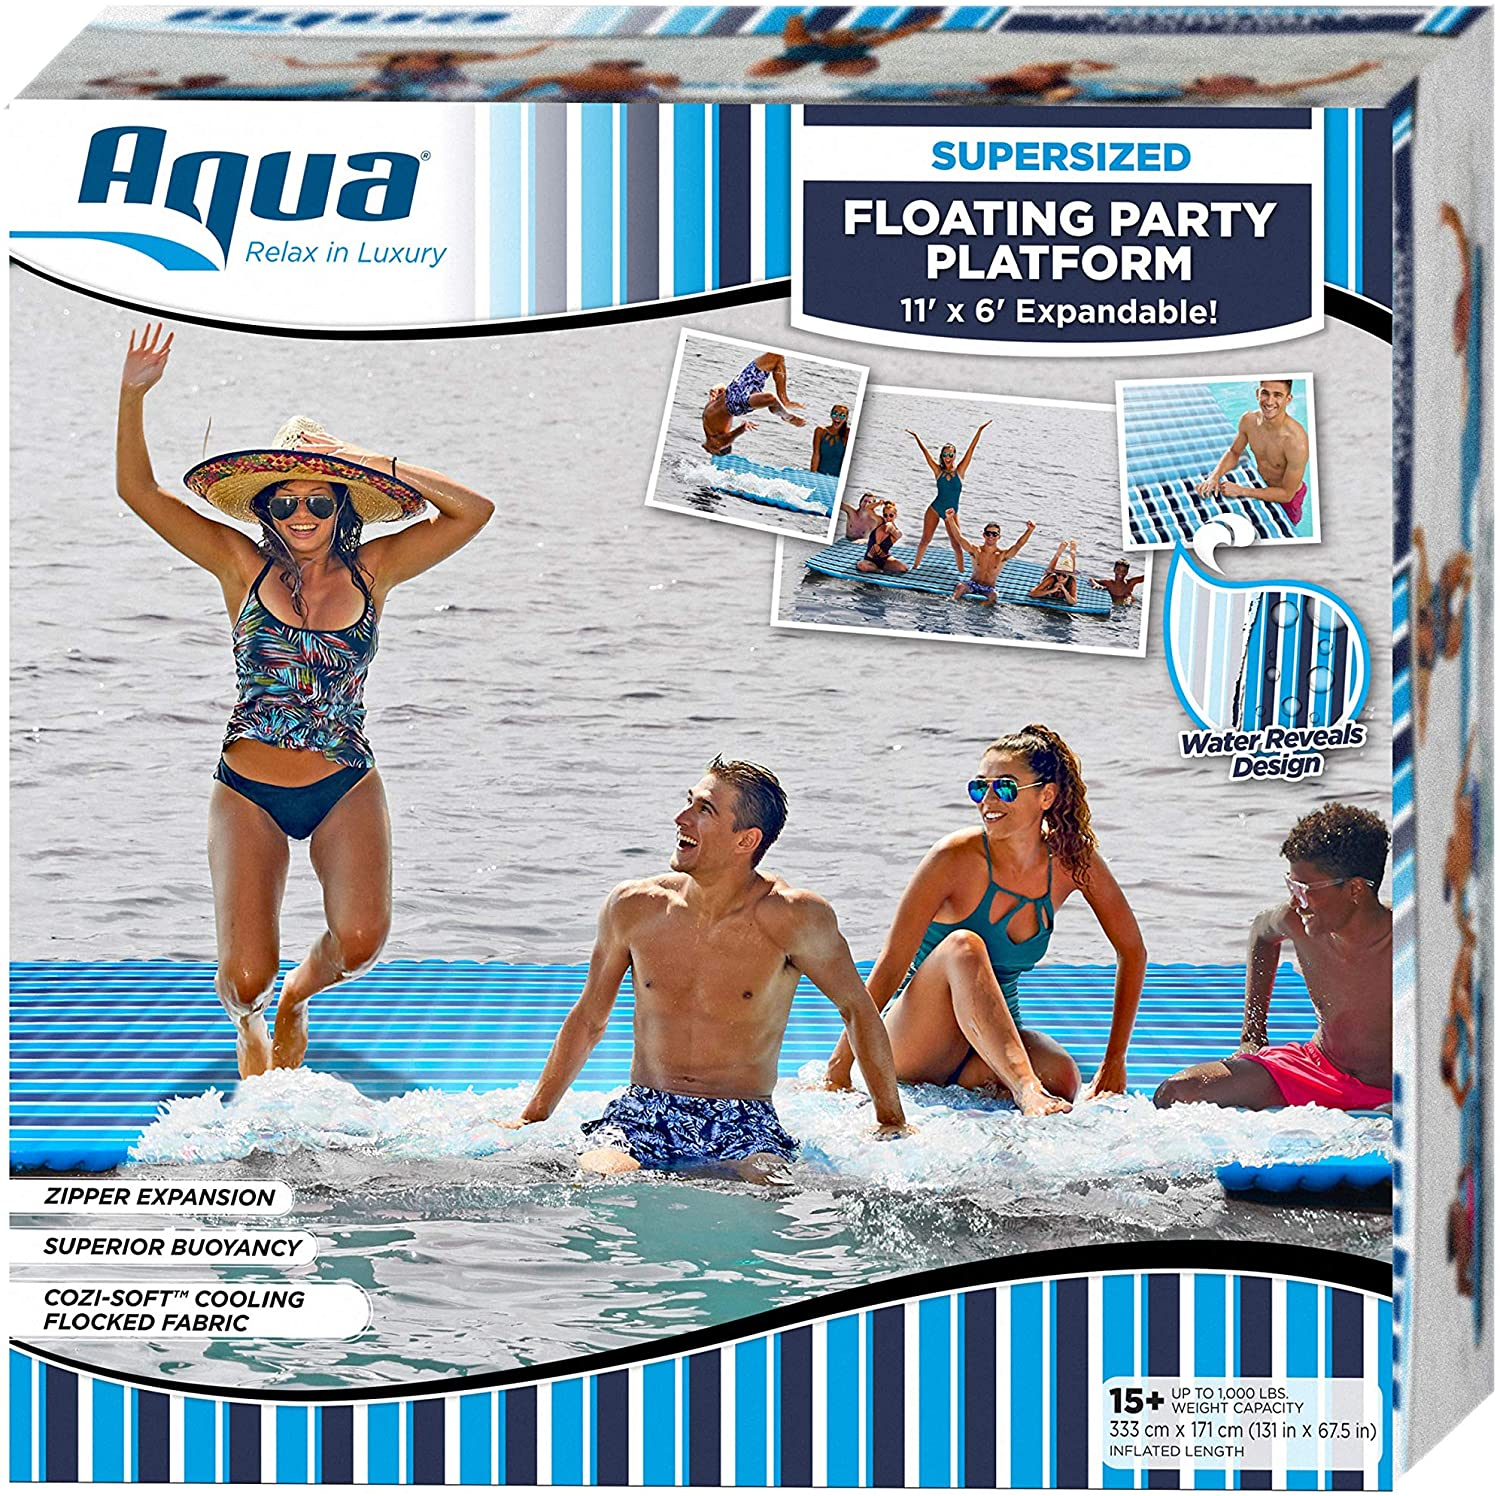 Supersized Floating Party Platform - 12' x 6'